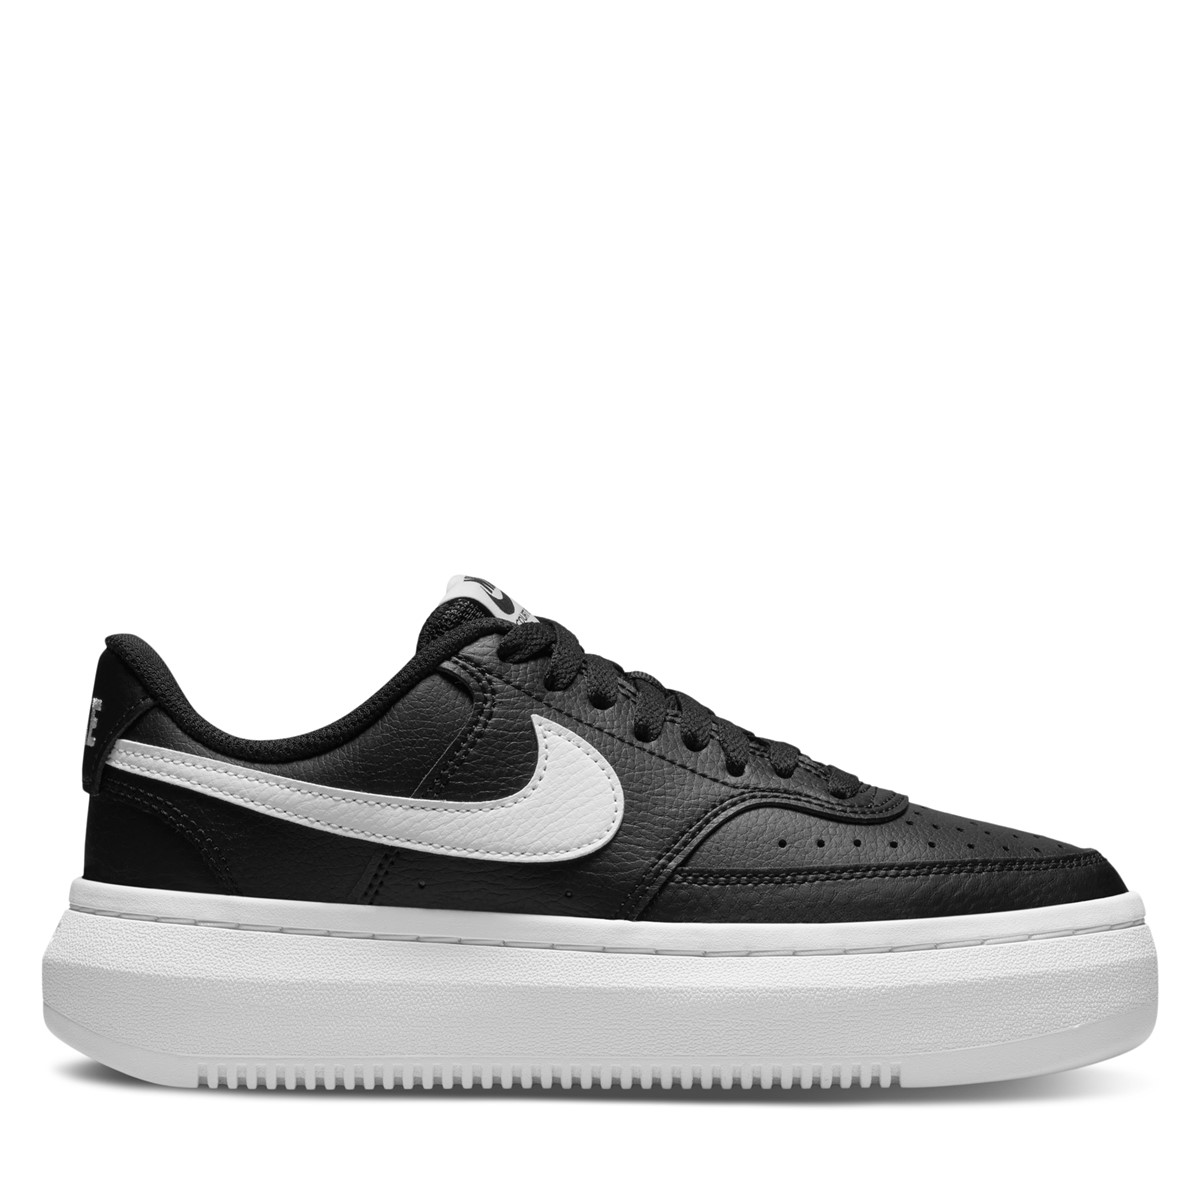 Women's Court Vision Alta Sneakers in Black/White